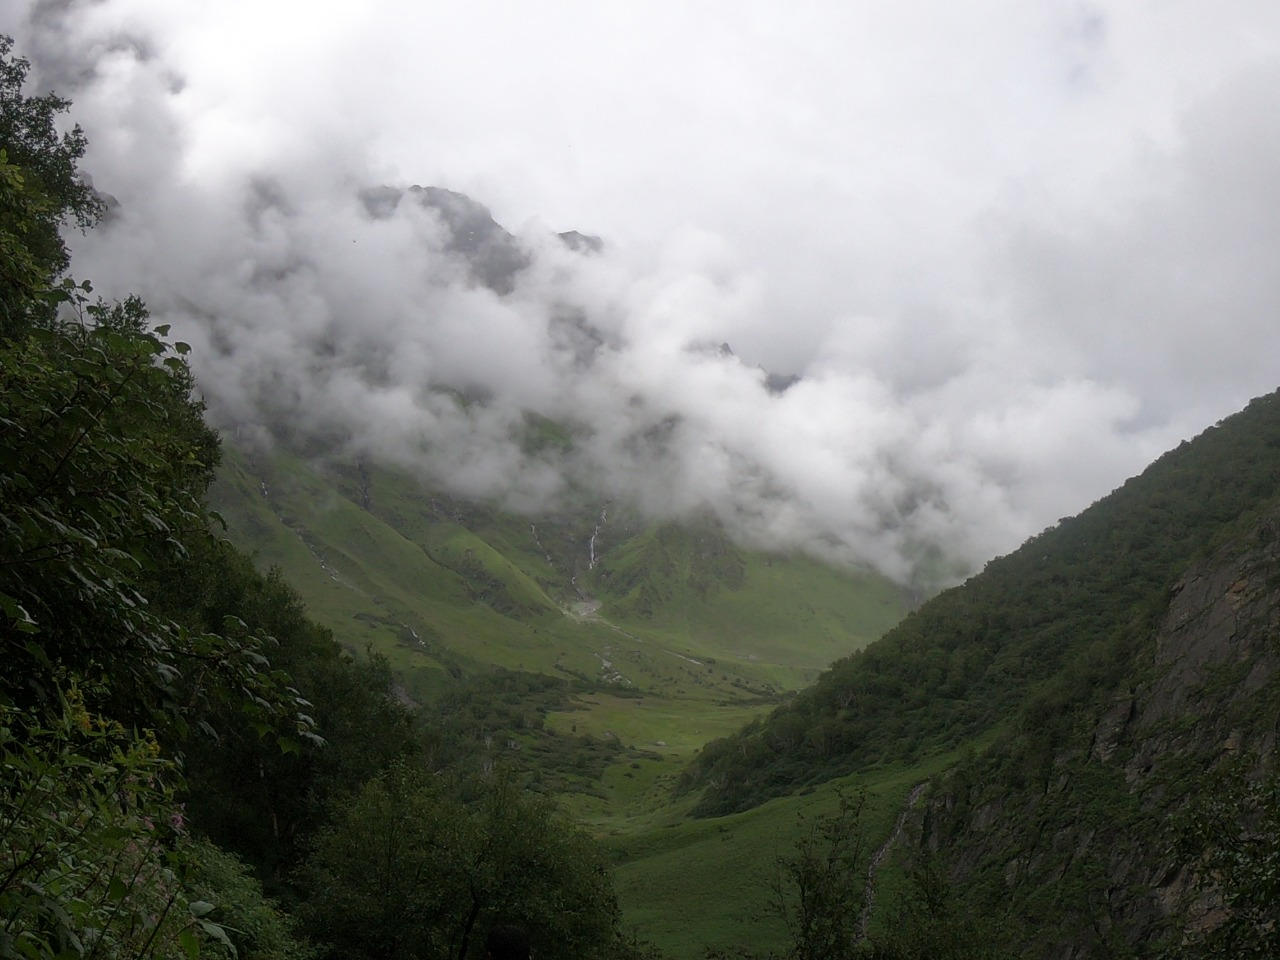 Cloud floating below green mountain enroute to Valley of flower